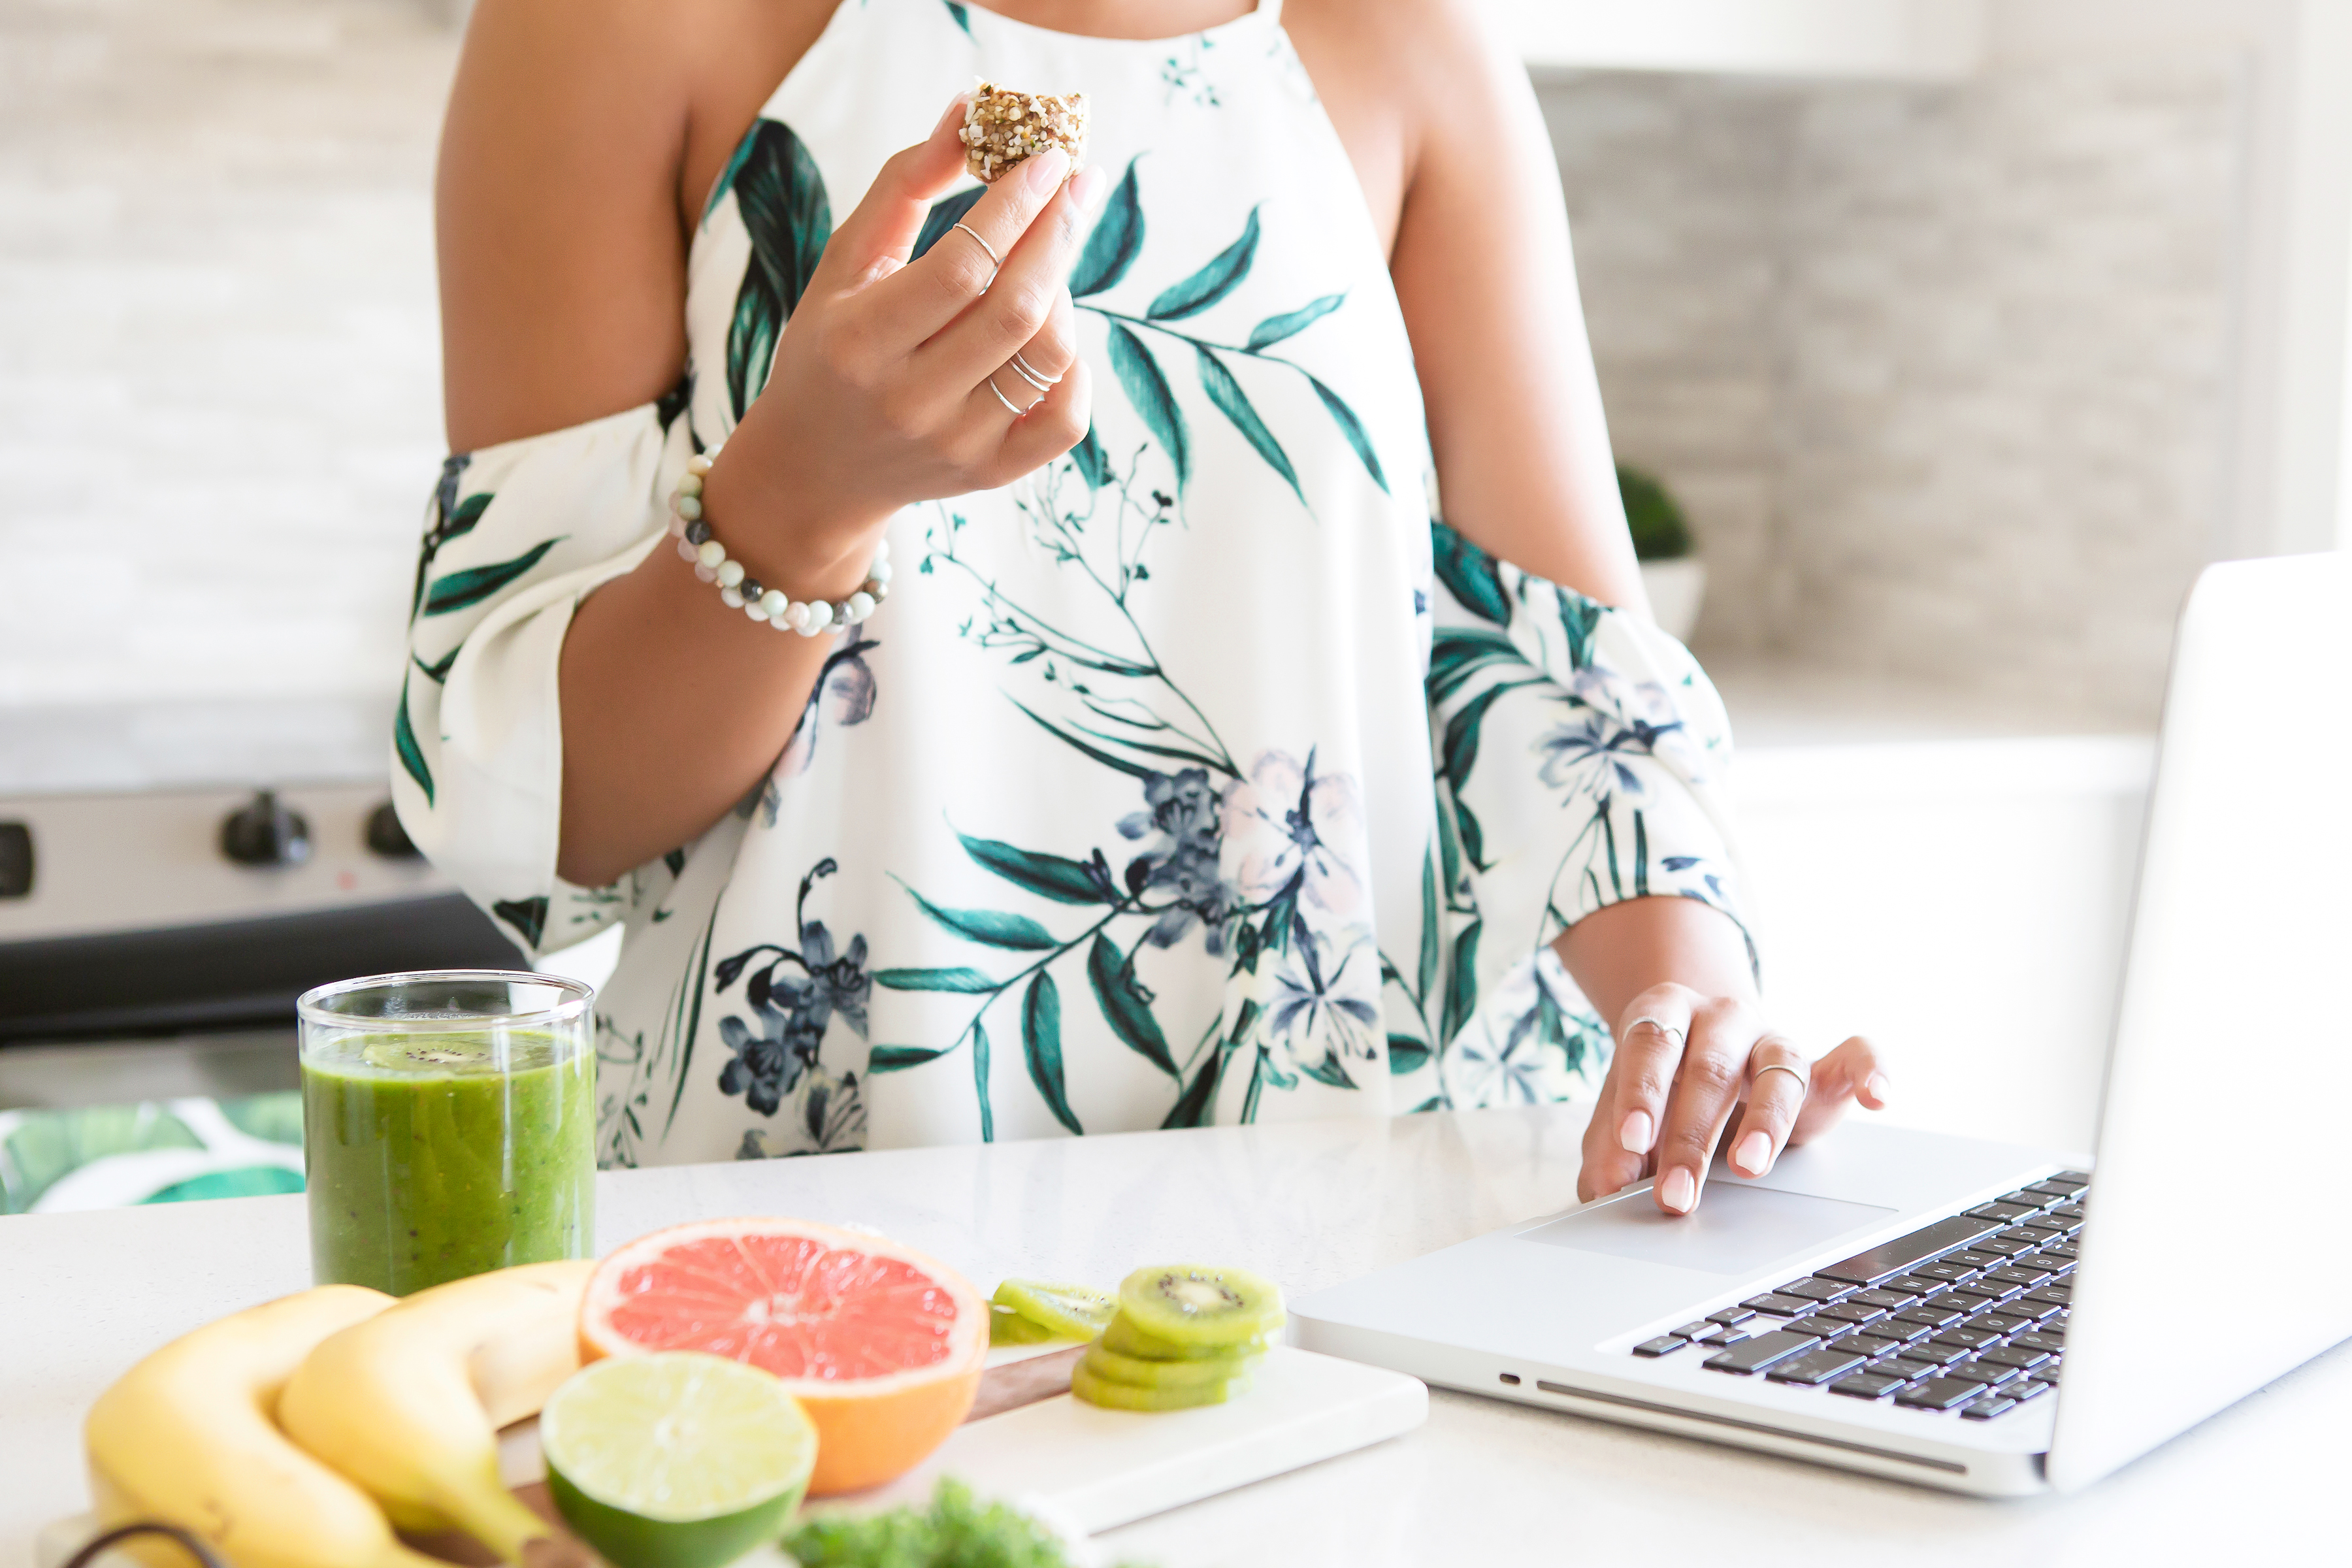 10 Healthy Habit That Will Change Your Life